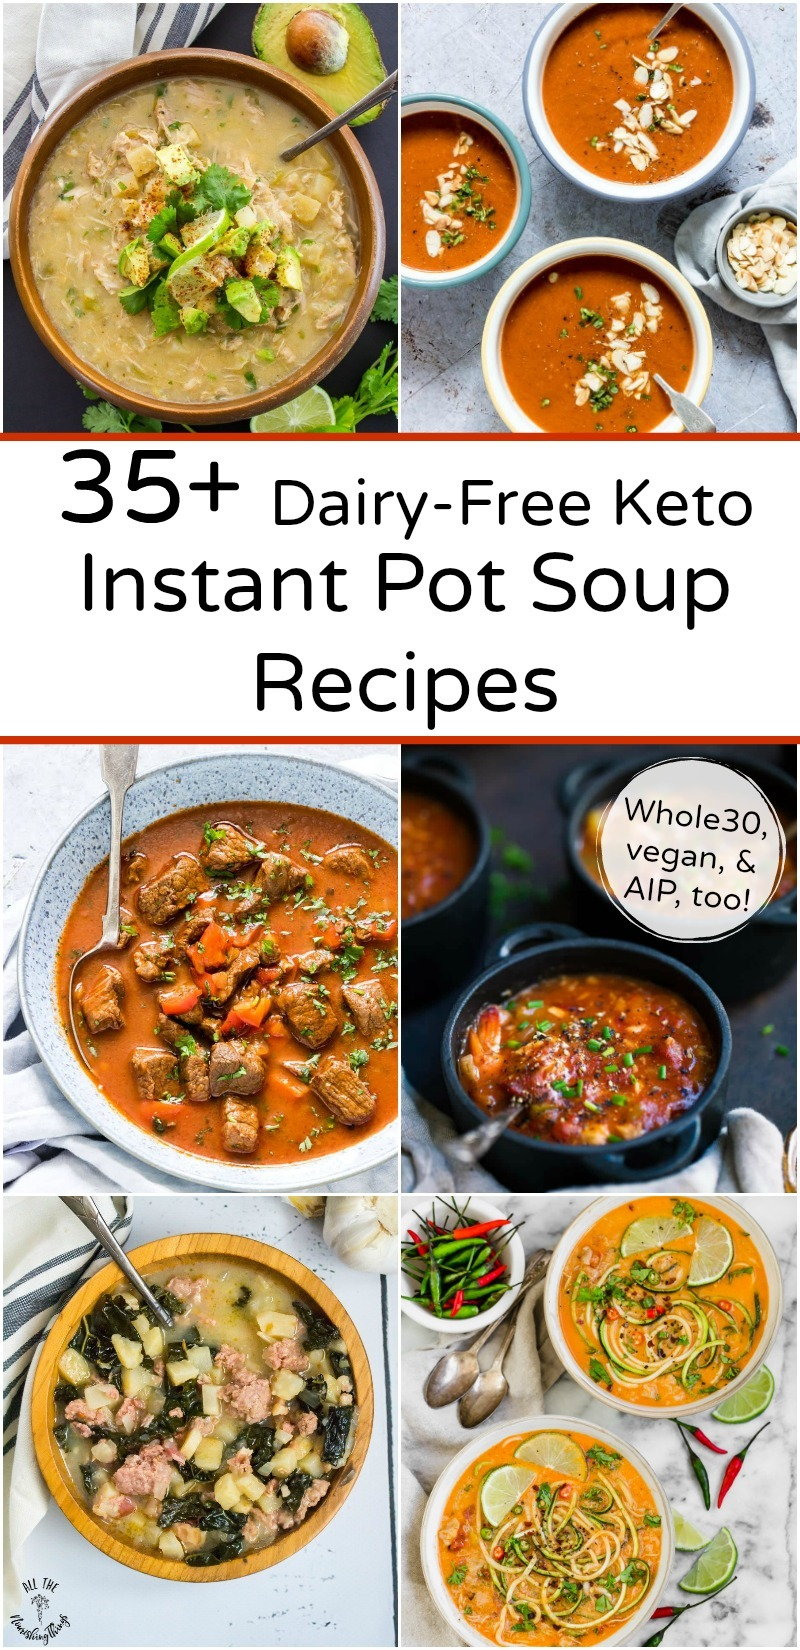 collage of 6 dairy-free keto instant pot soup recipes with text overlay